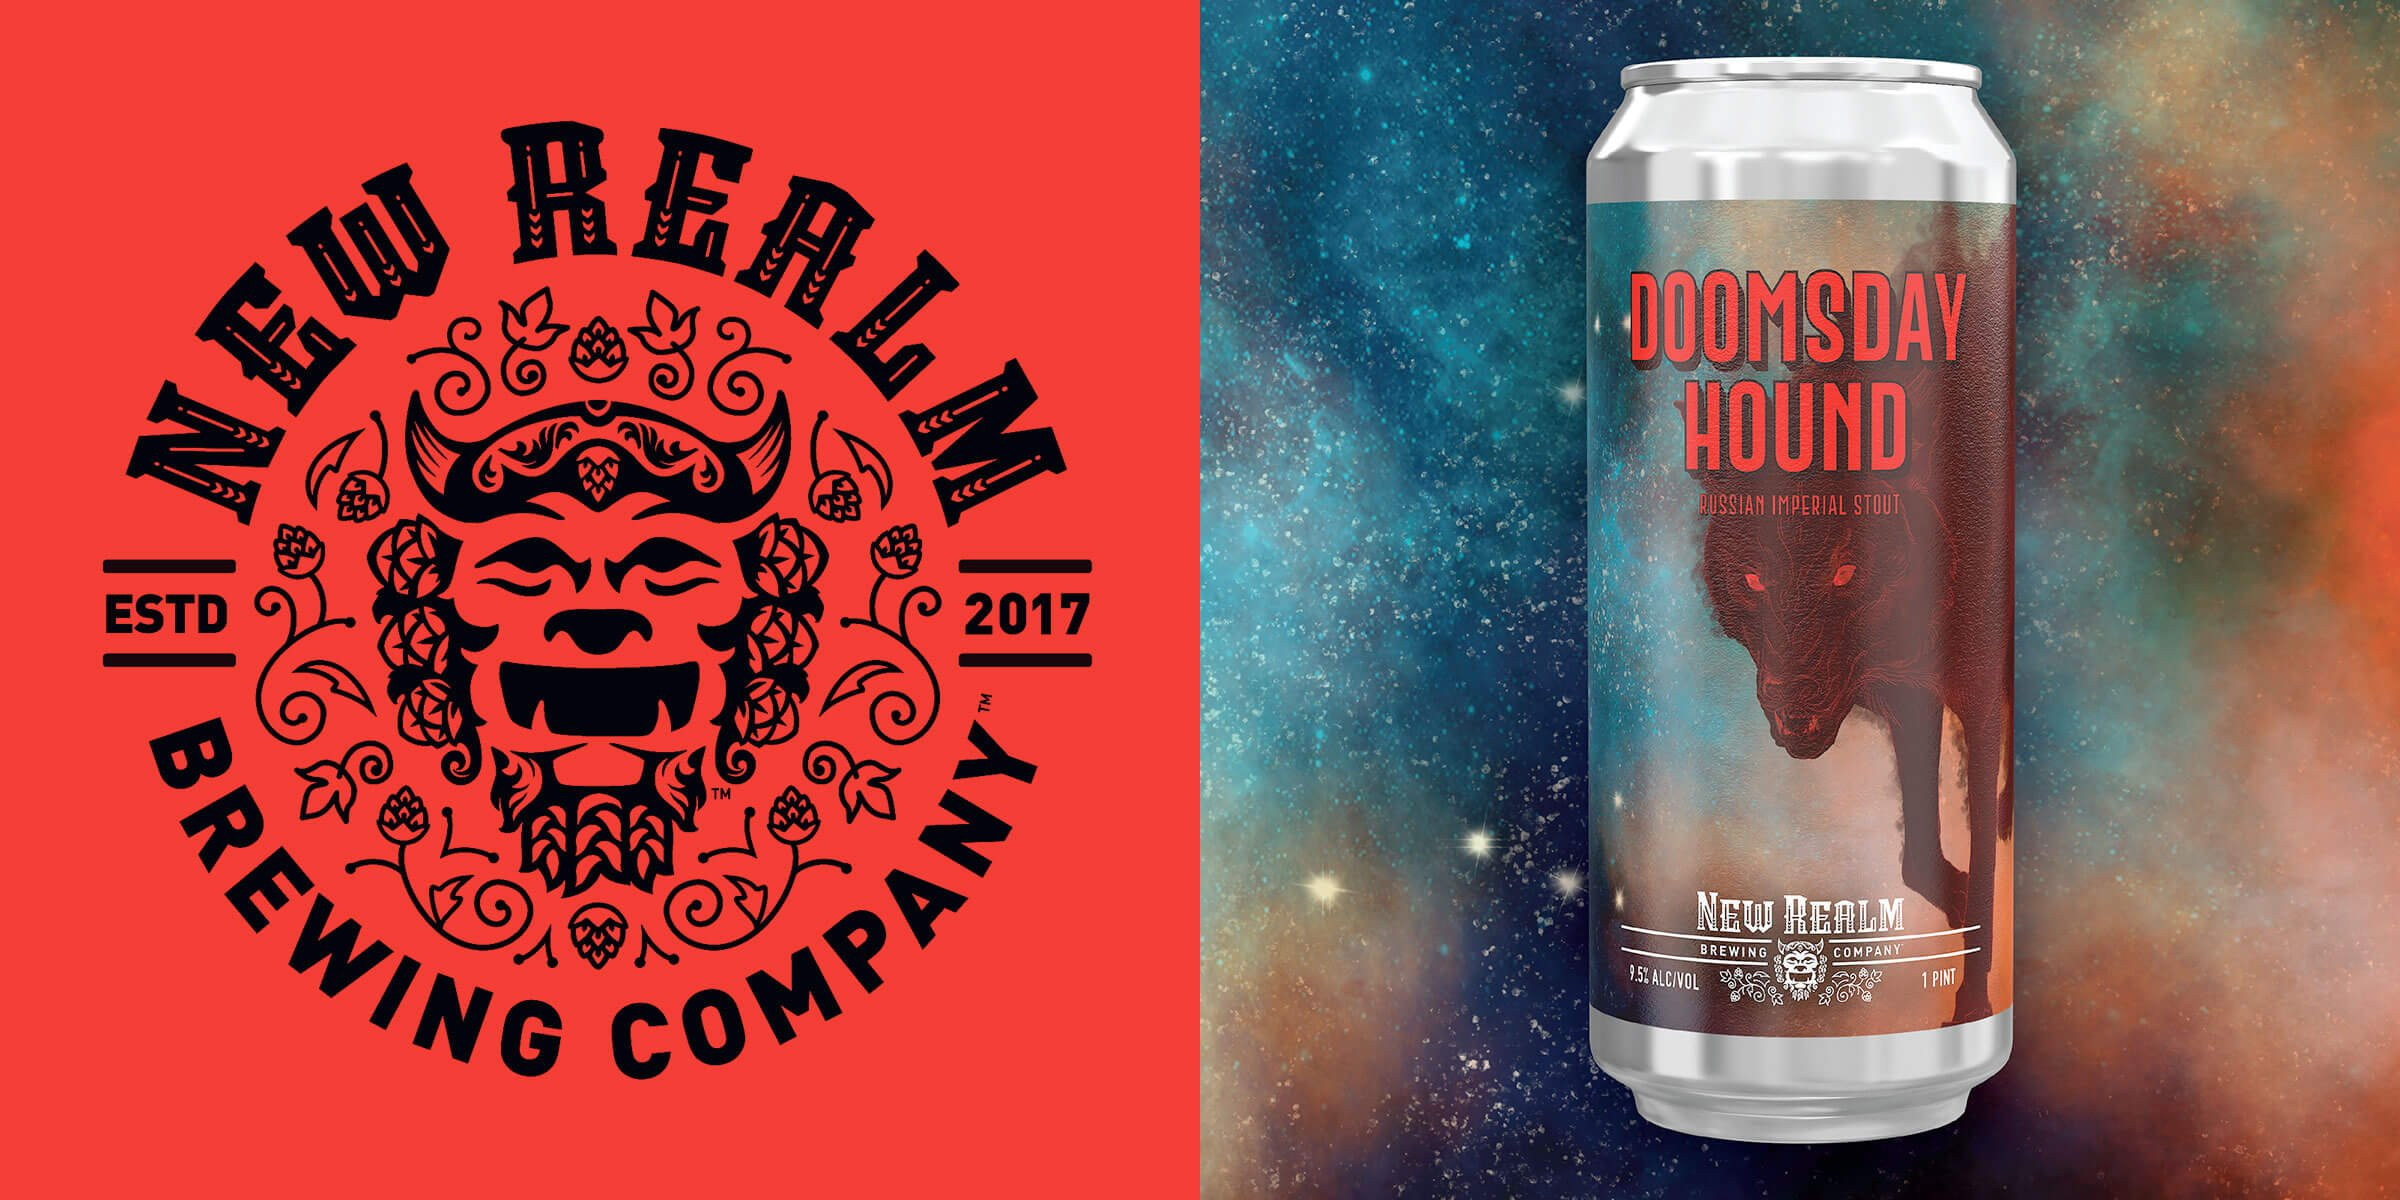 New Realm Brewing Company's viciously flavorful Russian Imperial Stout has broken its chains once again and is ready to unleash its wrath for a third time.